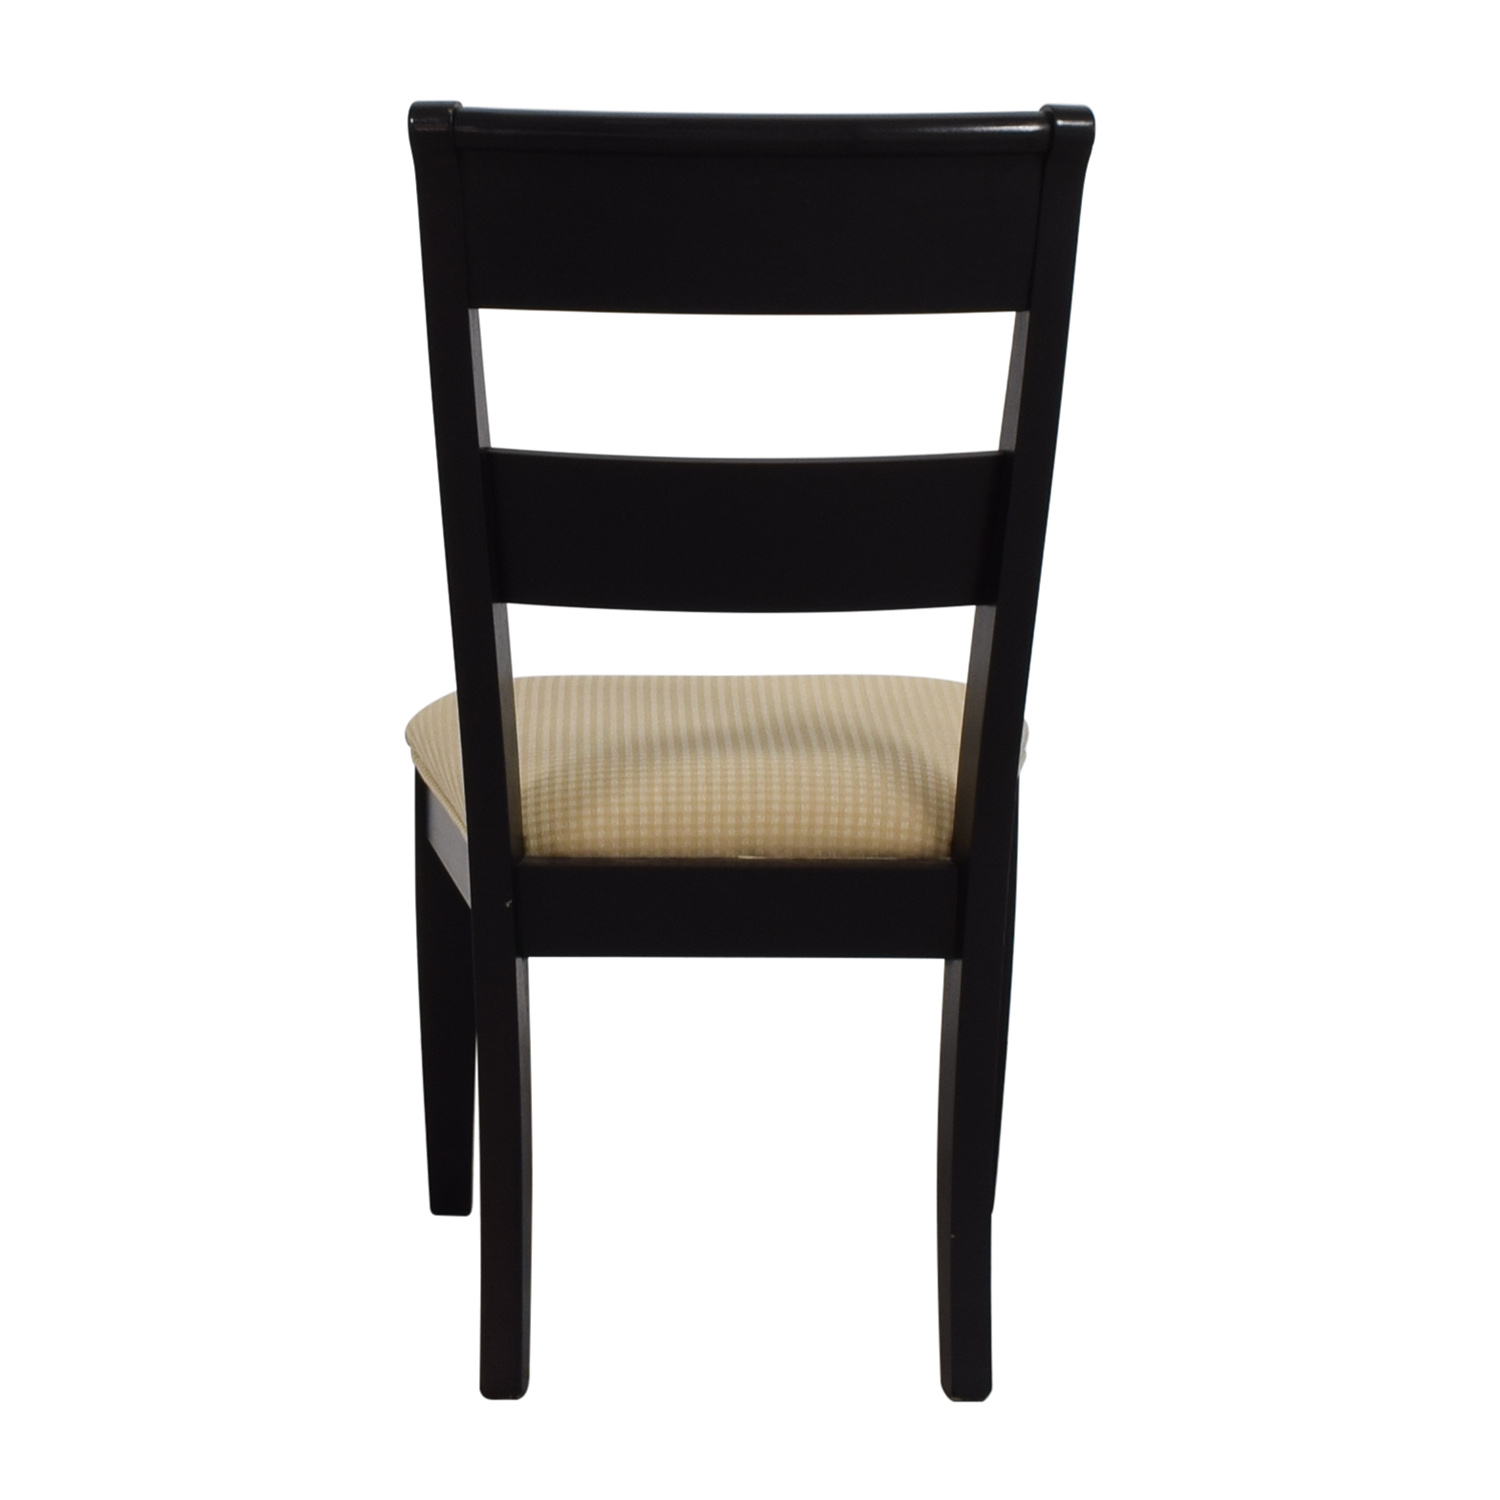 Raymour & Flanigan Raymour & Flanigan Black Chair with Beige Check Upholstery price